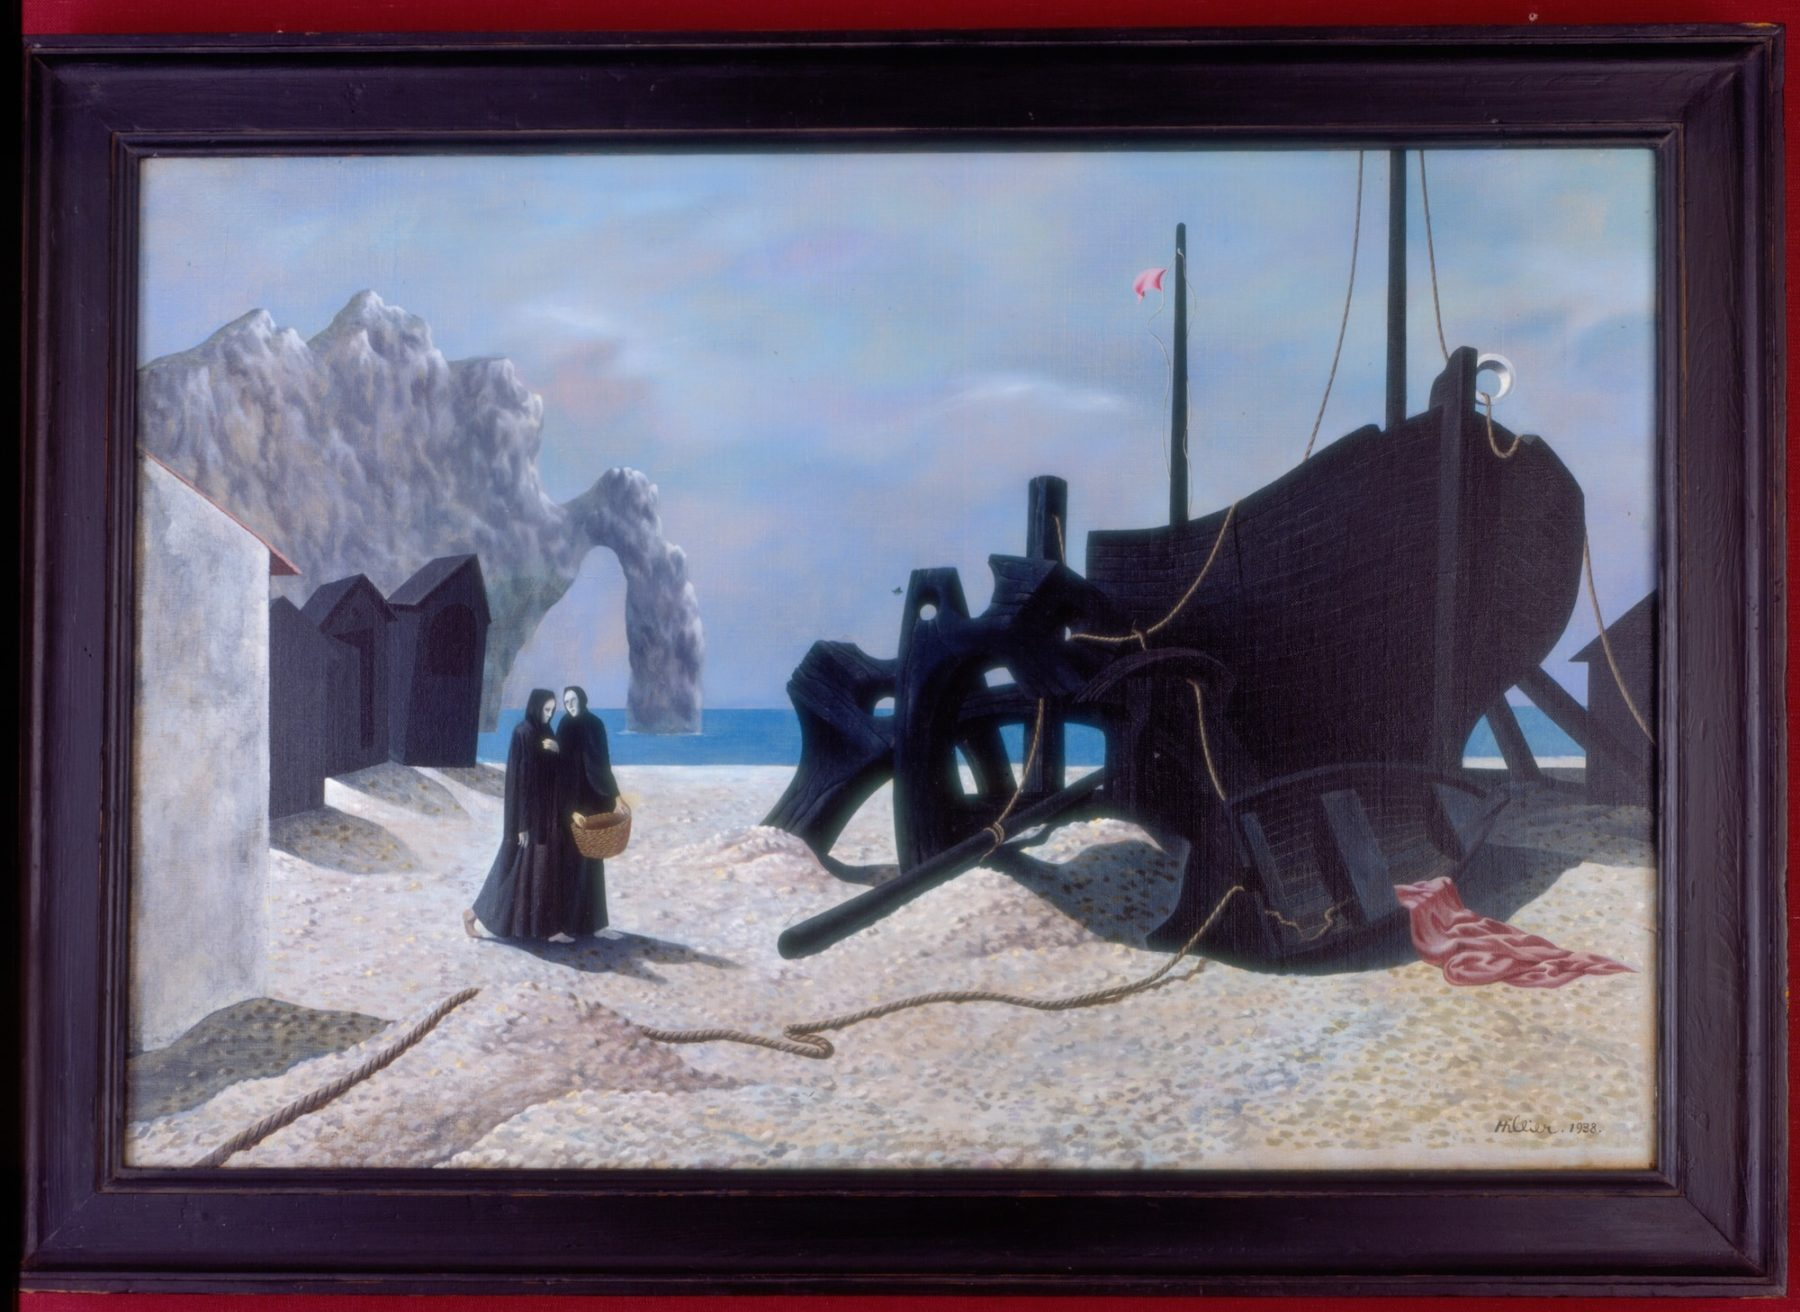 The large hulk of a black ship is shown on a sandy beach. Ropes cascade from its interior, connecting it to a small capsized rowing boat, from which a pink cloth is draped. To the left are two figures dressed floor length in black robes, one of them carrying a basket. Behind them are three black beach huts. The sea, a rocky cove and a cloudy blue sky form the background to the scene.